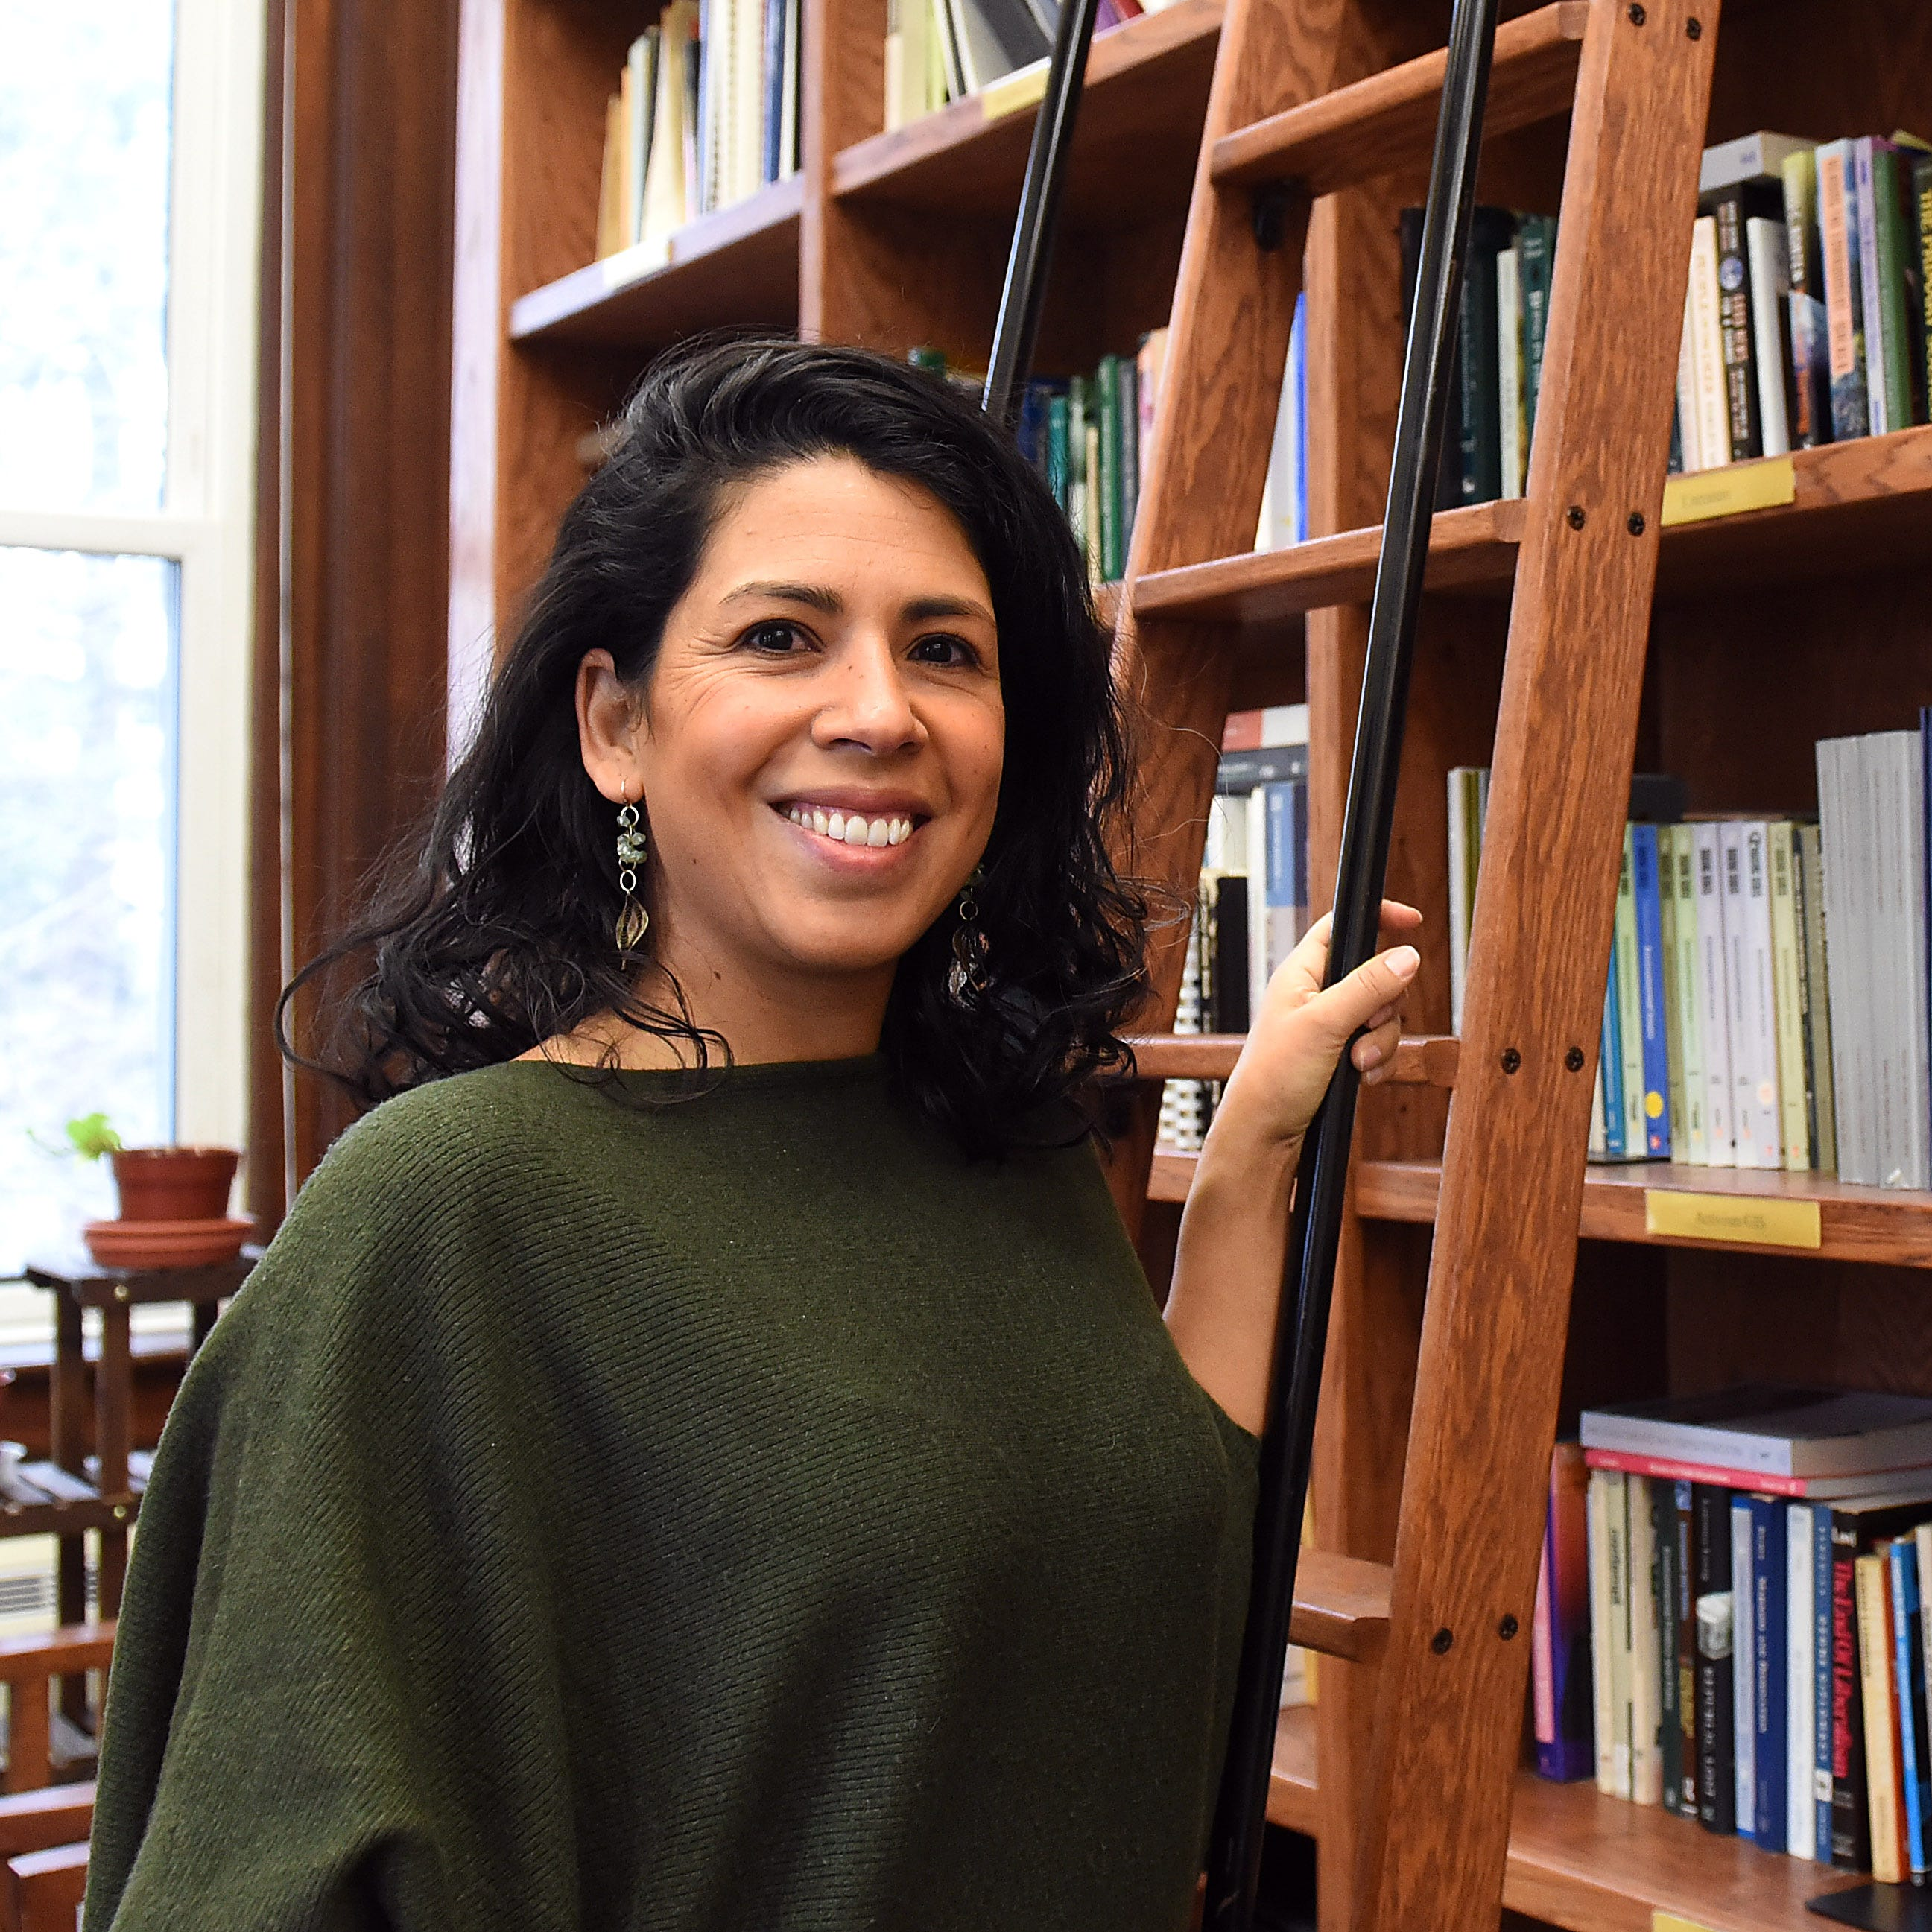 Women in STEM: Denison's Olivia Aguilar grows into passion for environmental studies